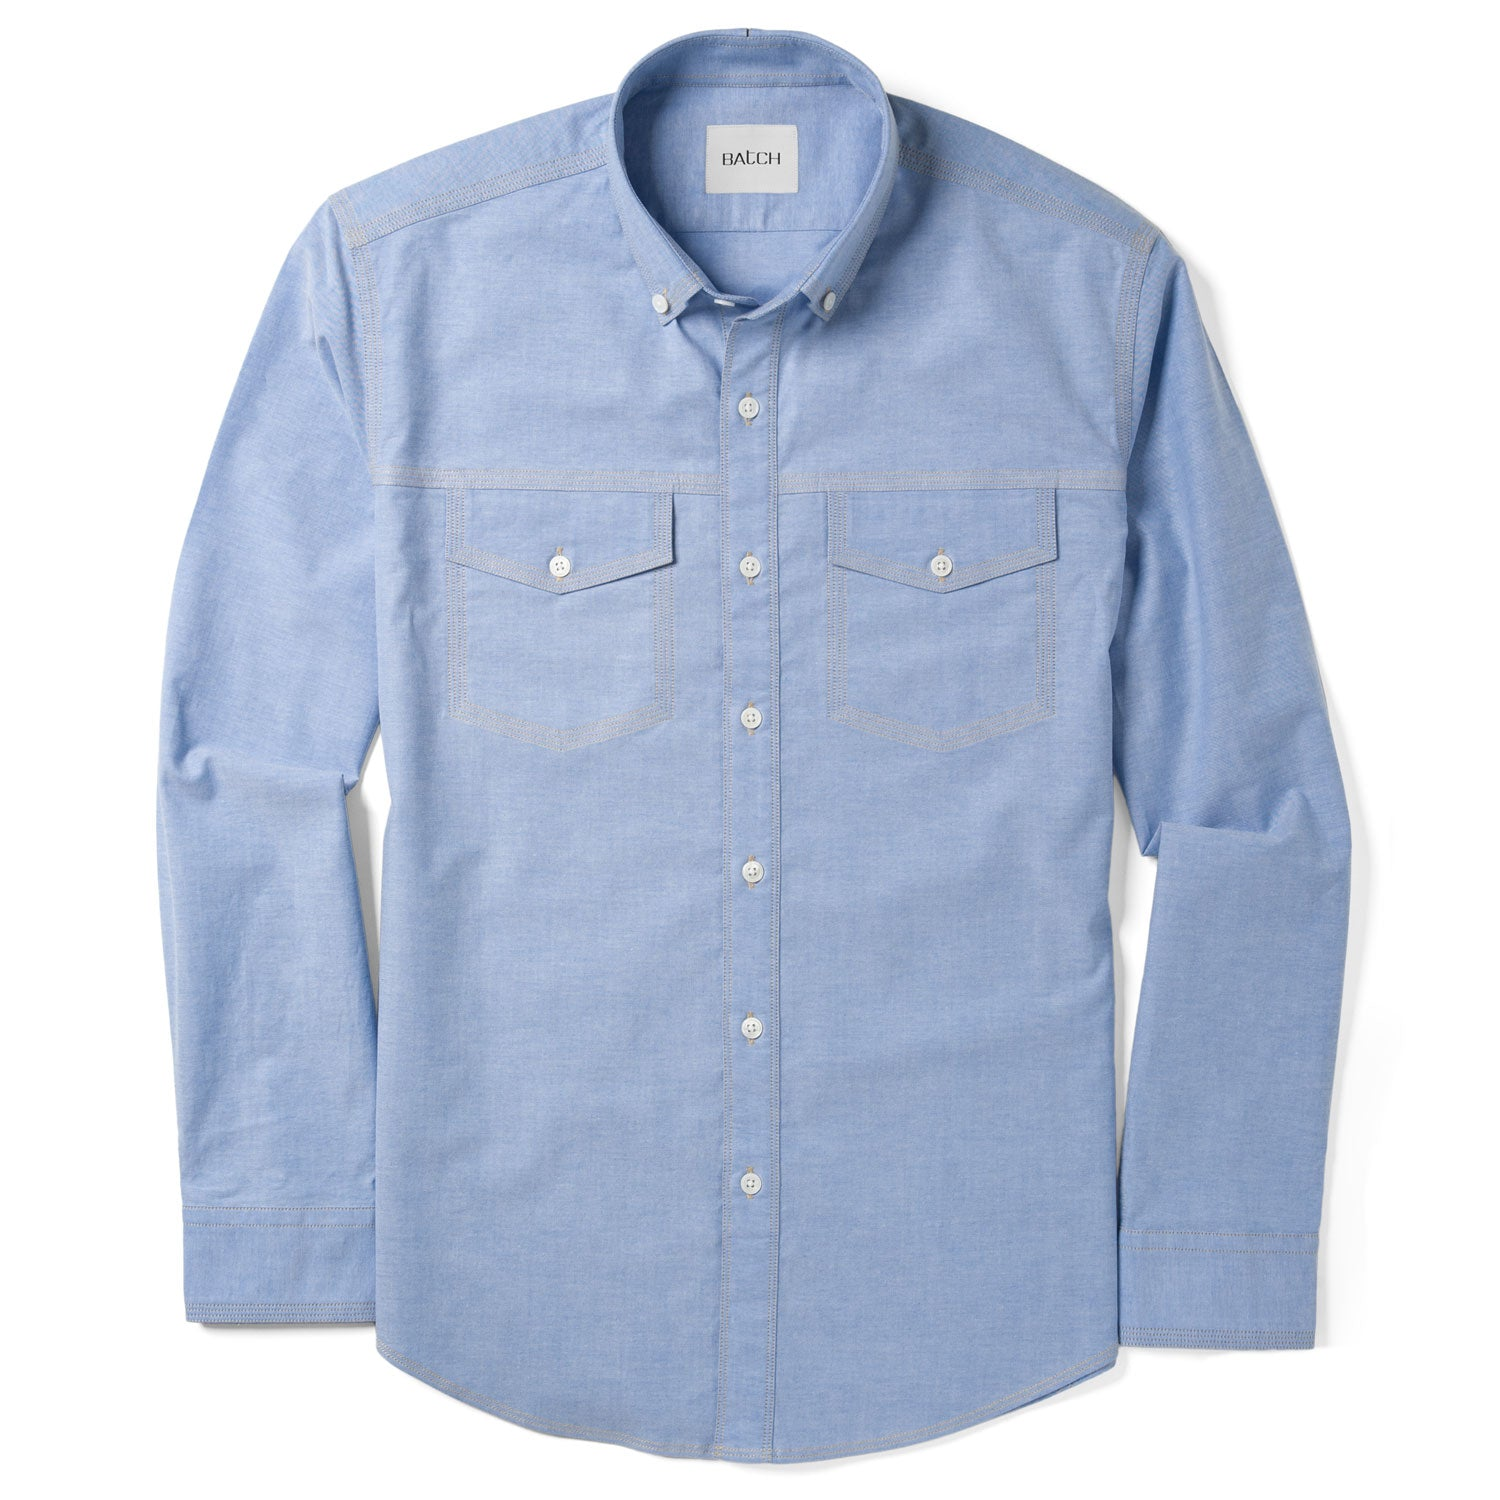 Author Casual Shirt Two Pockets – Clean Blue Stretch Oxford